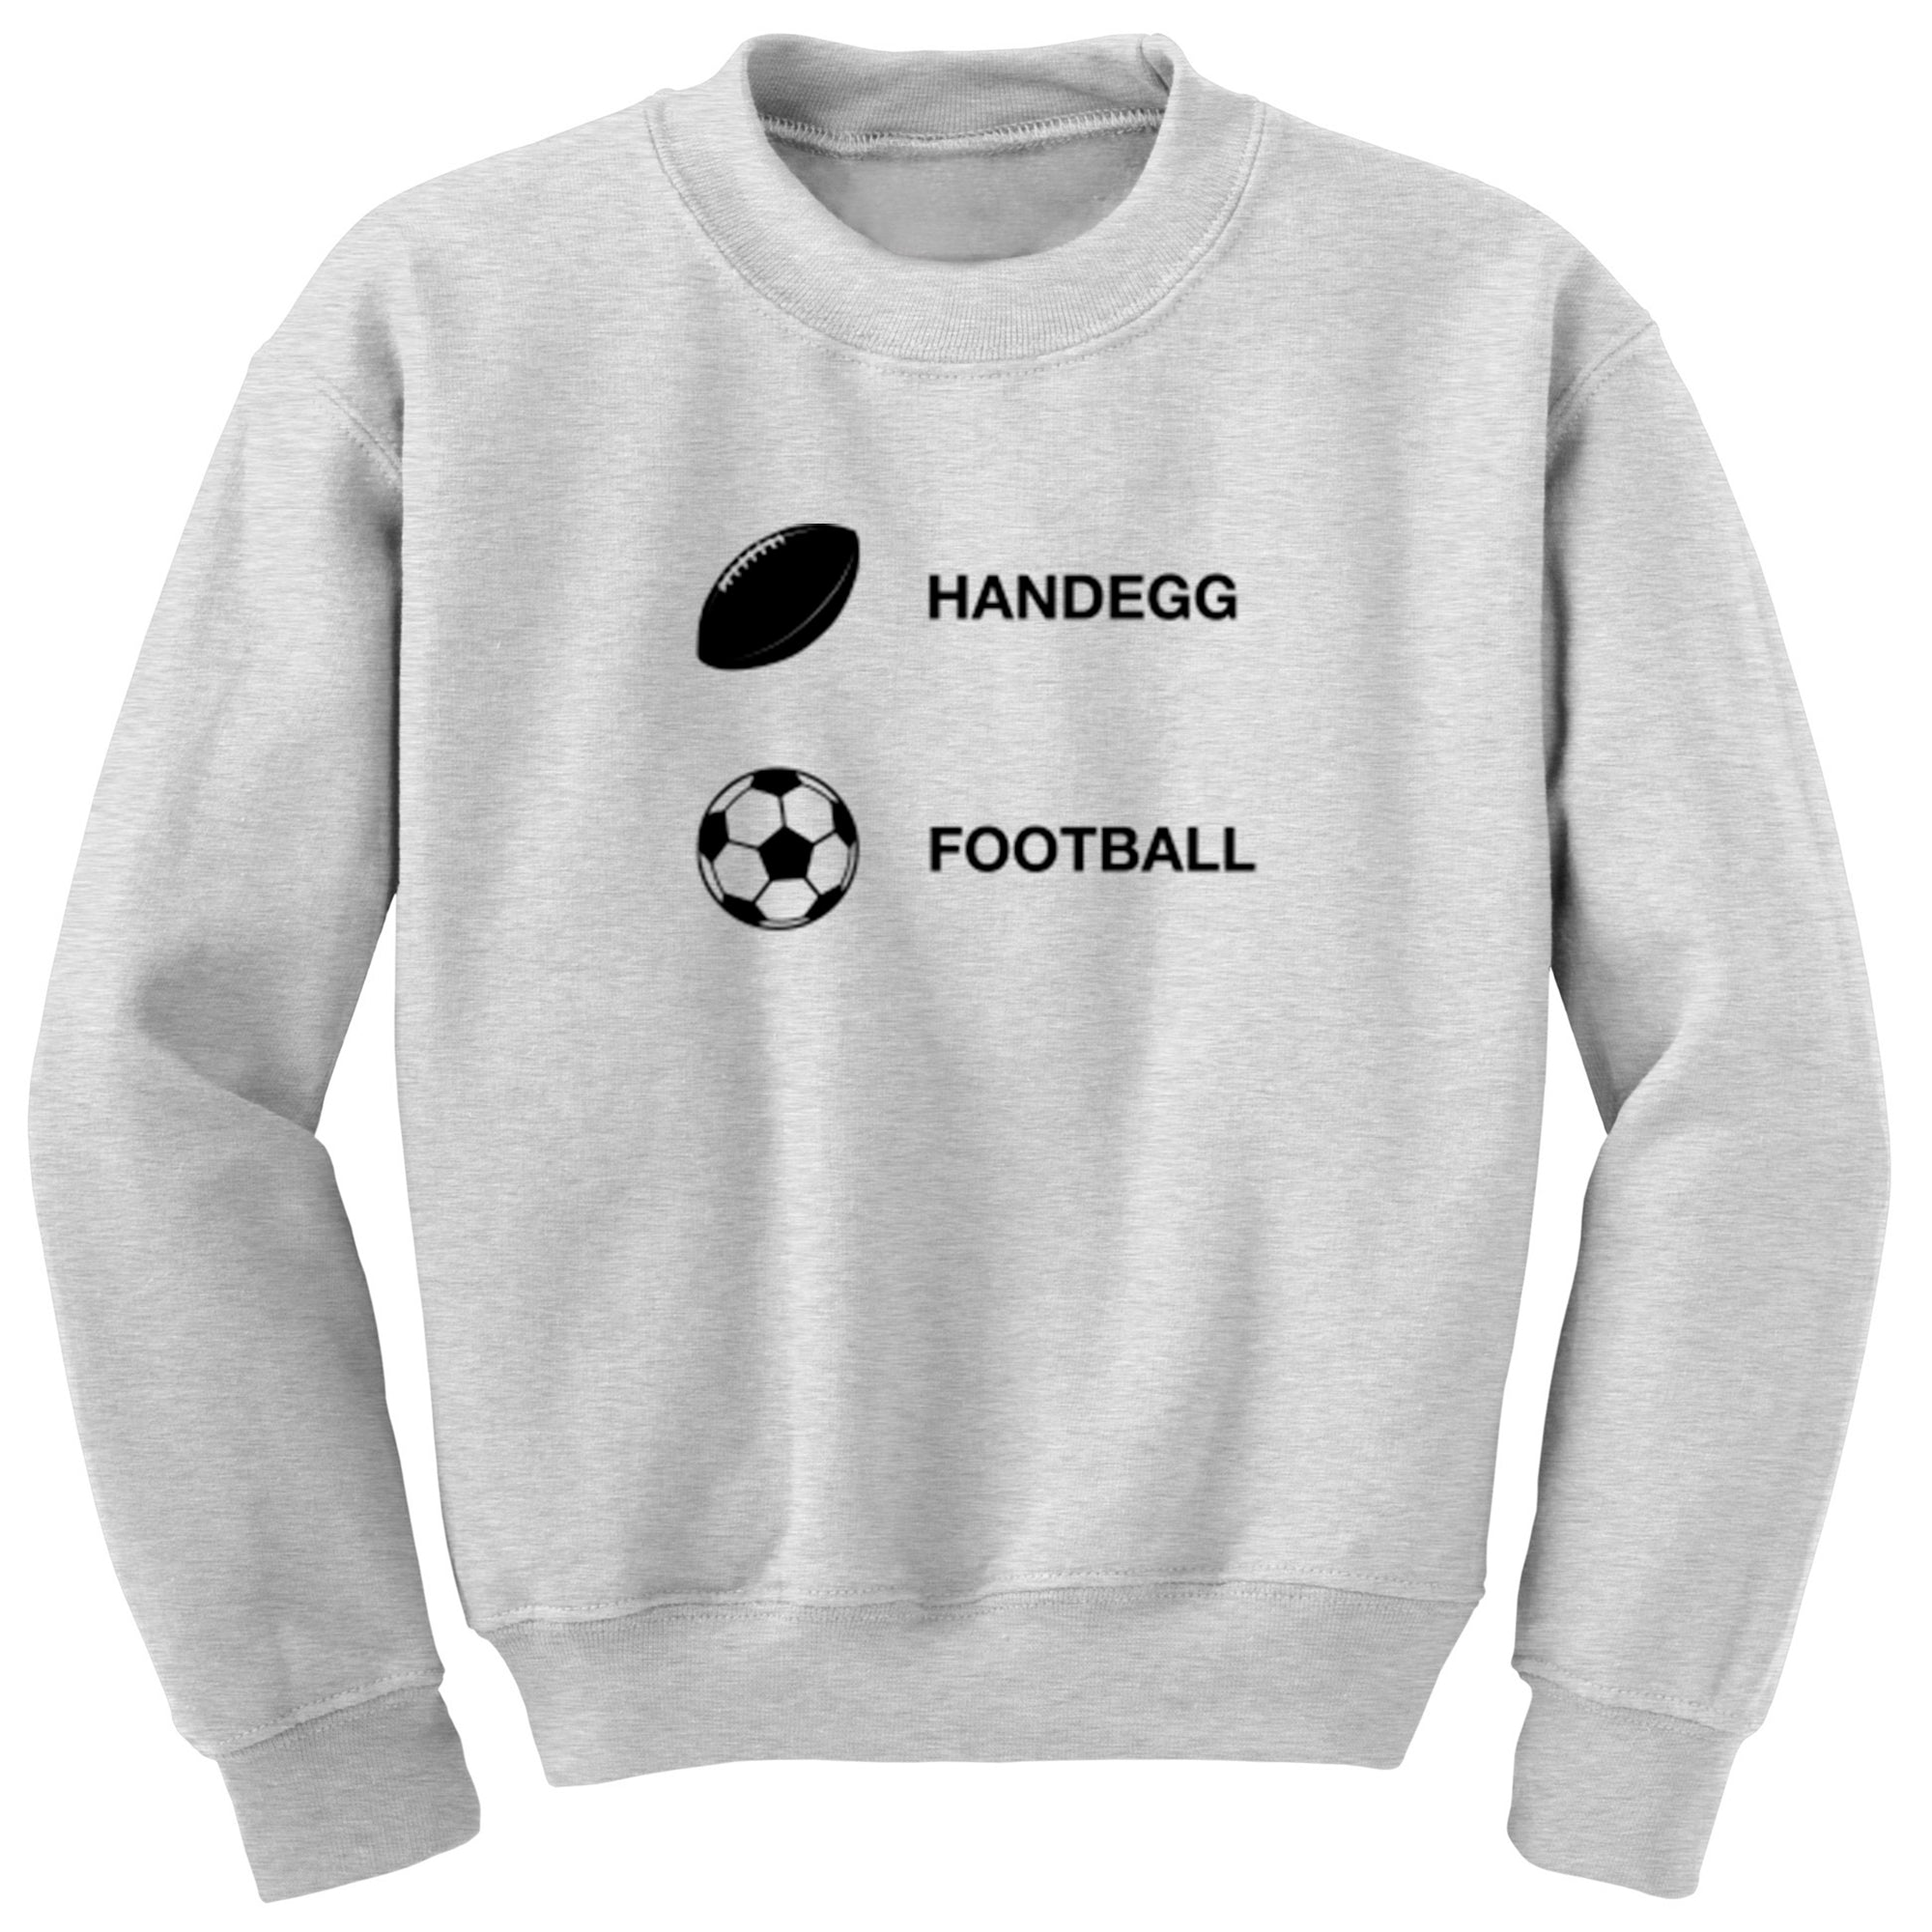 Handegg, Football Unisex Jumper A0085 - Illustrated Identity Ltd.